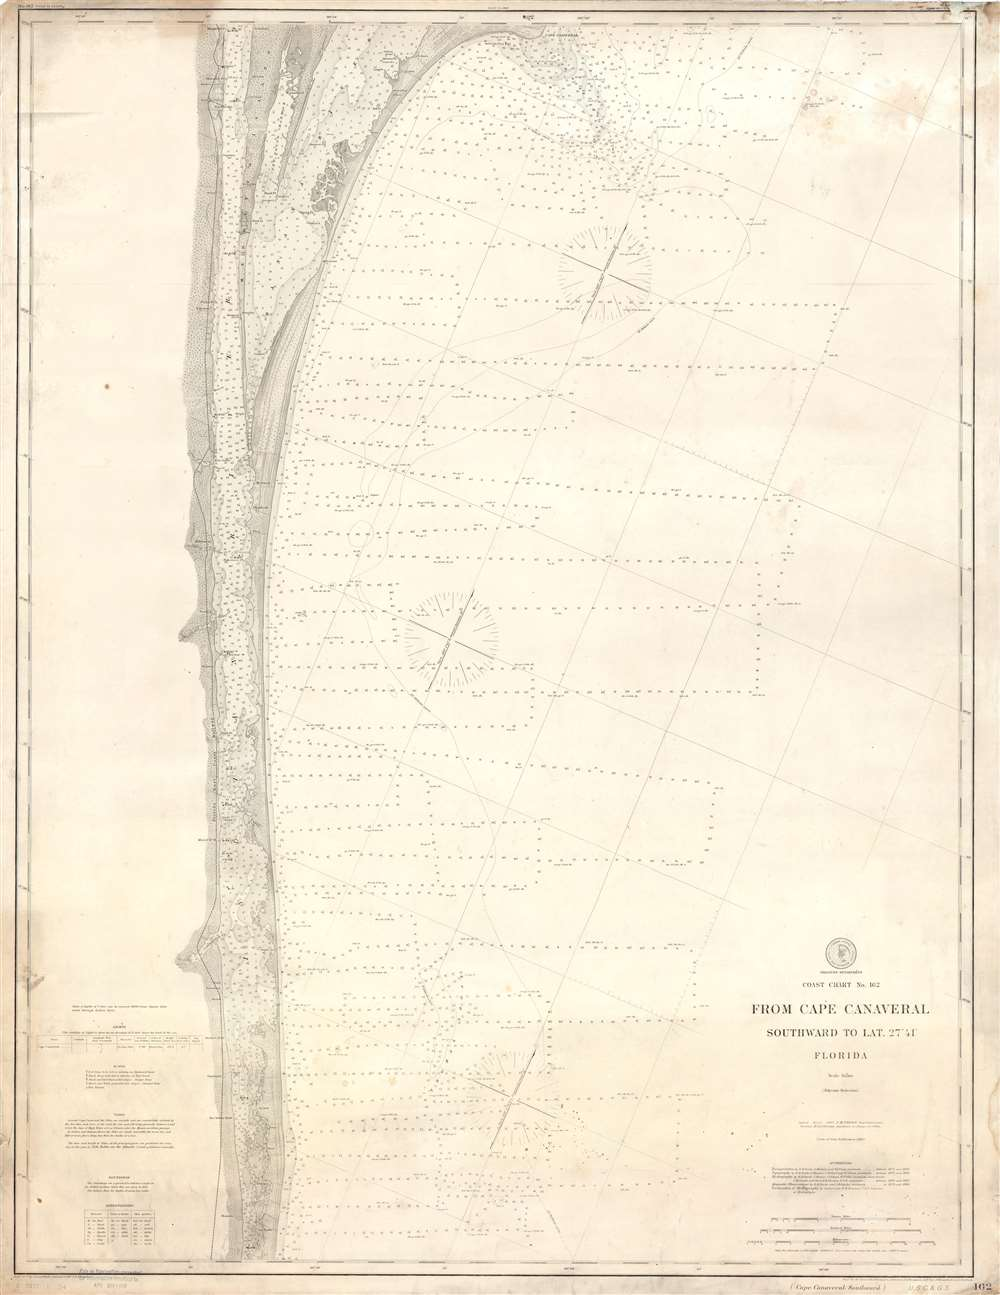 Coast Chart No. 162 From Cape Canaveral Southward to Lat. 27° 41' Florida